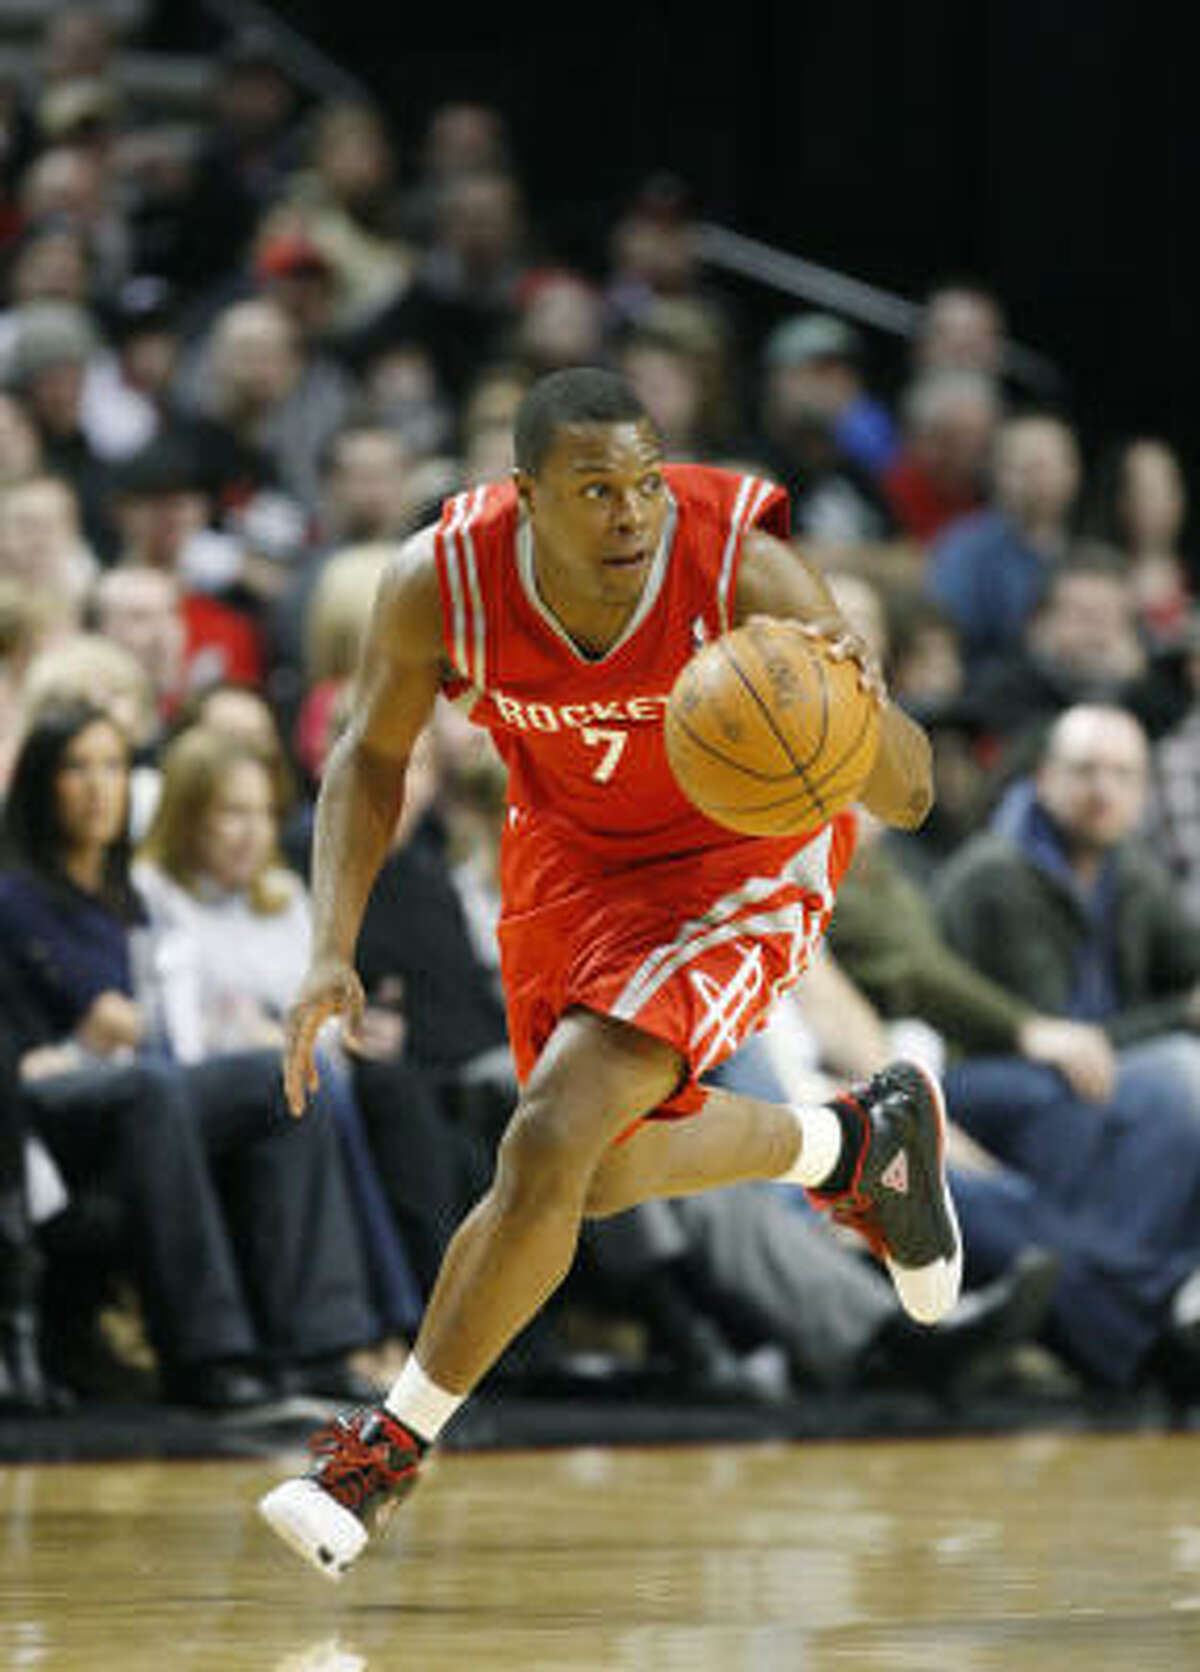 Rockets point guard Kyle Lowry scored 21 points and dished out 11 assists in the win.